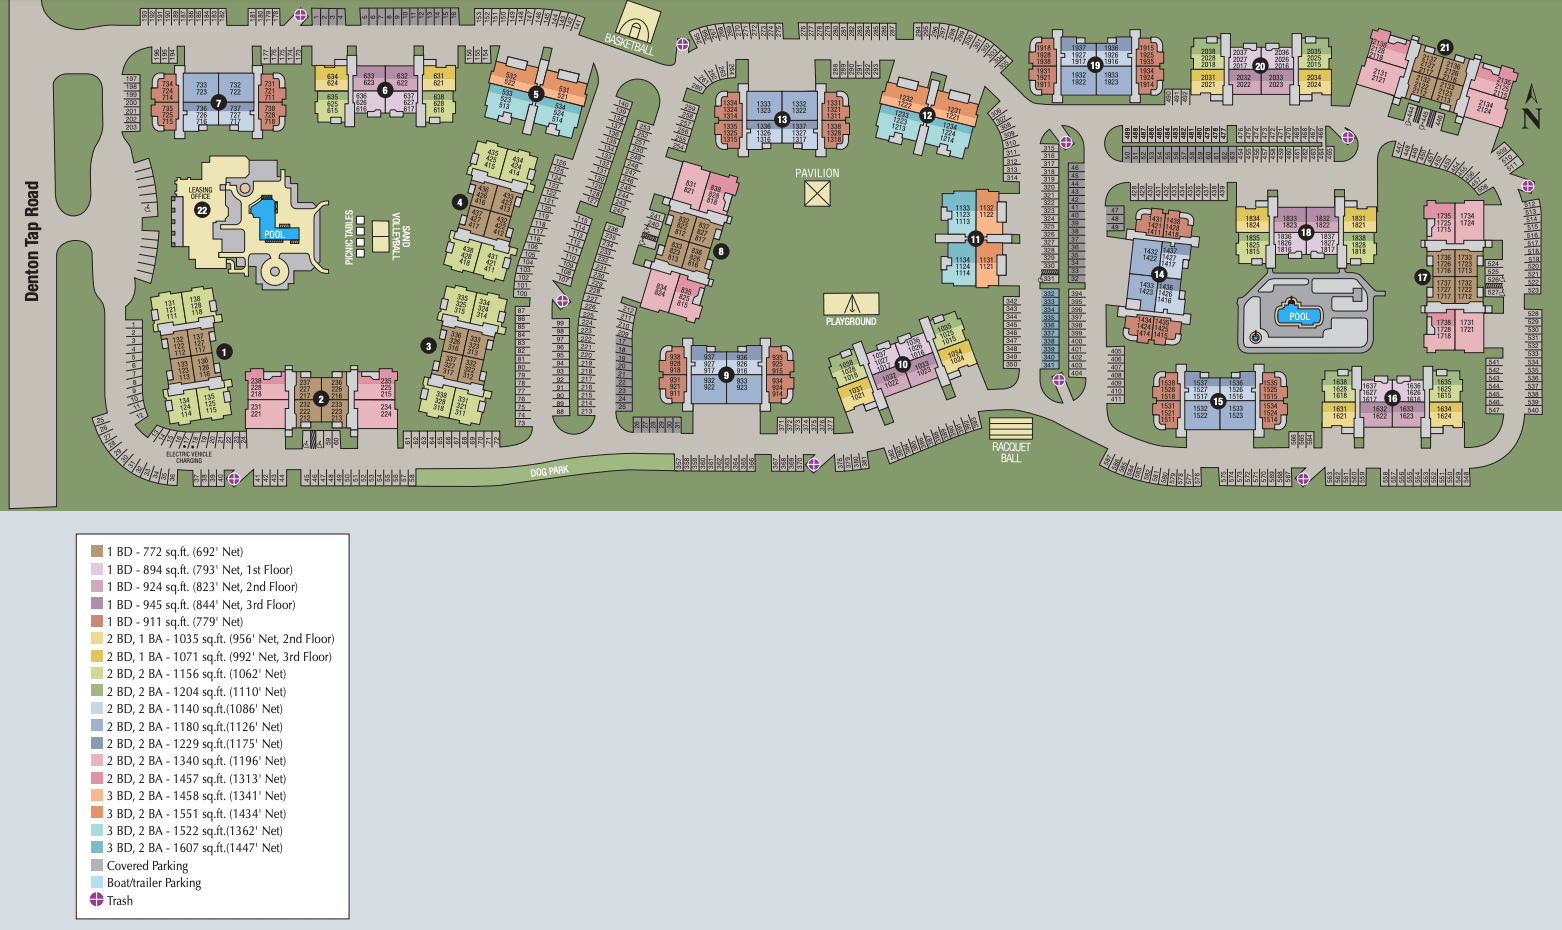 Site map of Ballantyne Apartments in Lewisville, TX